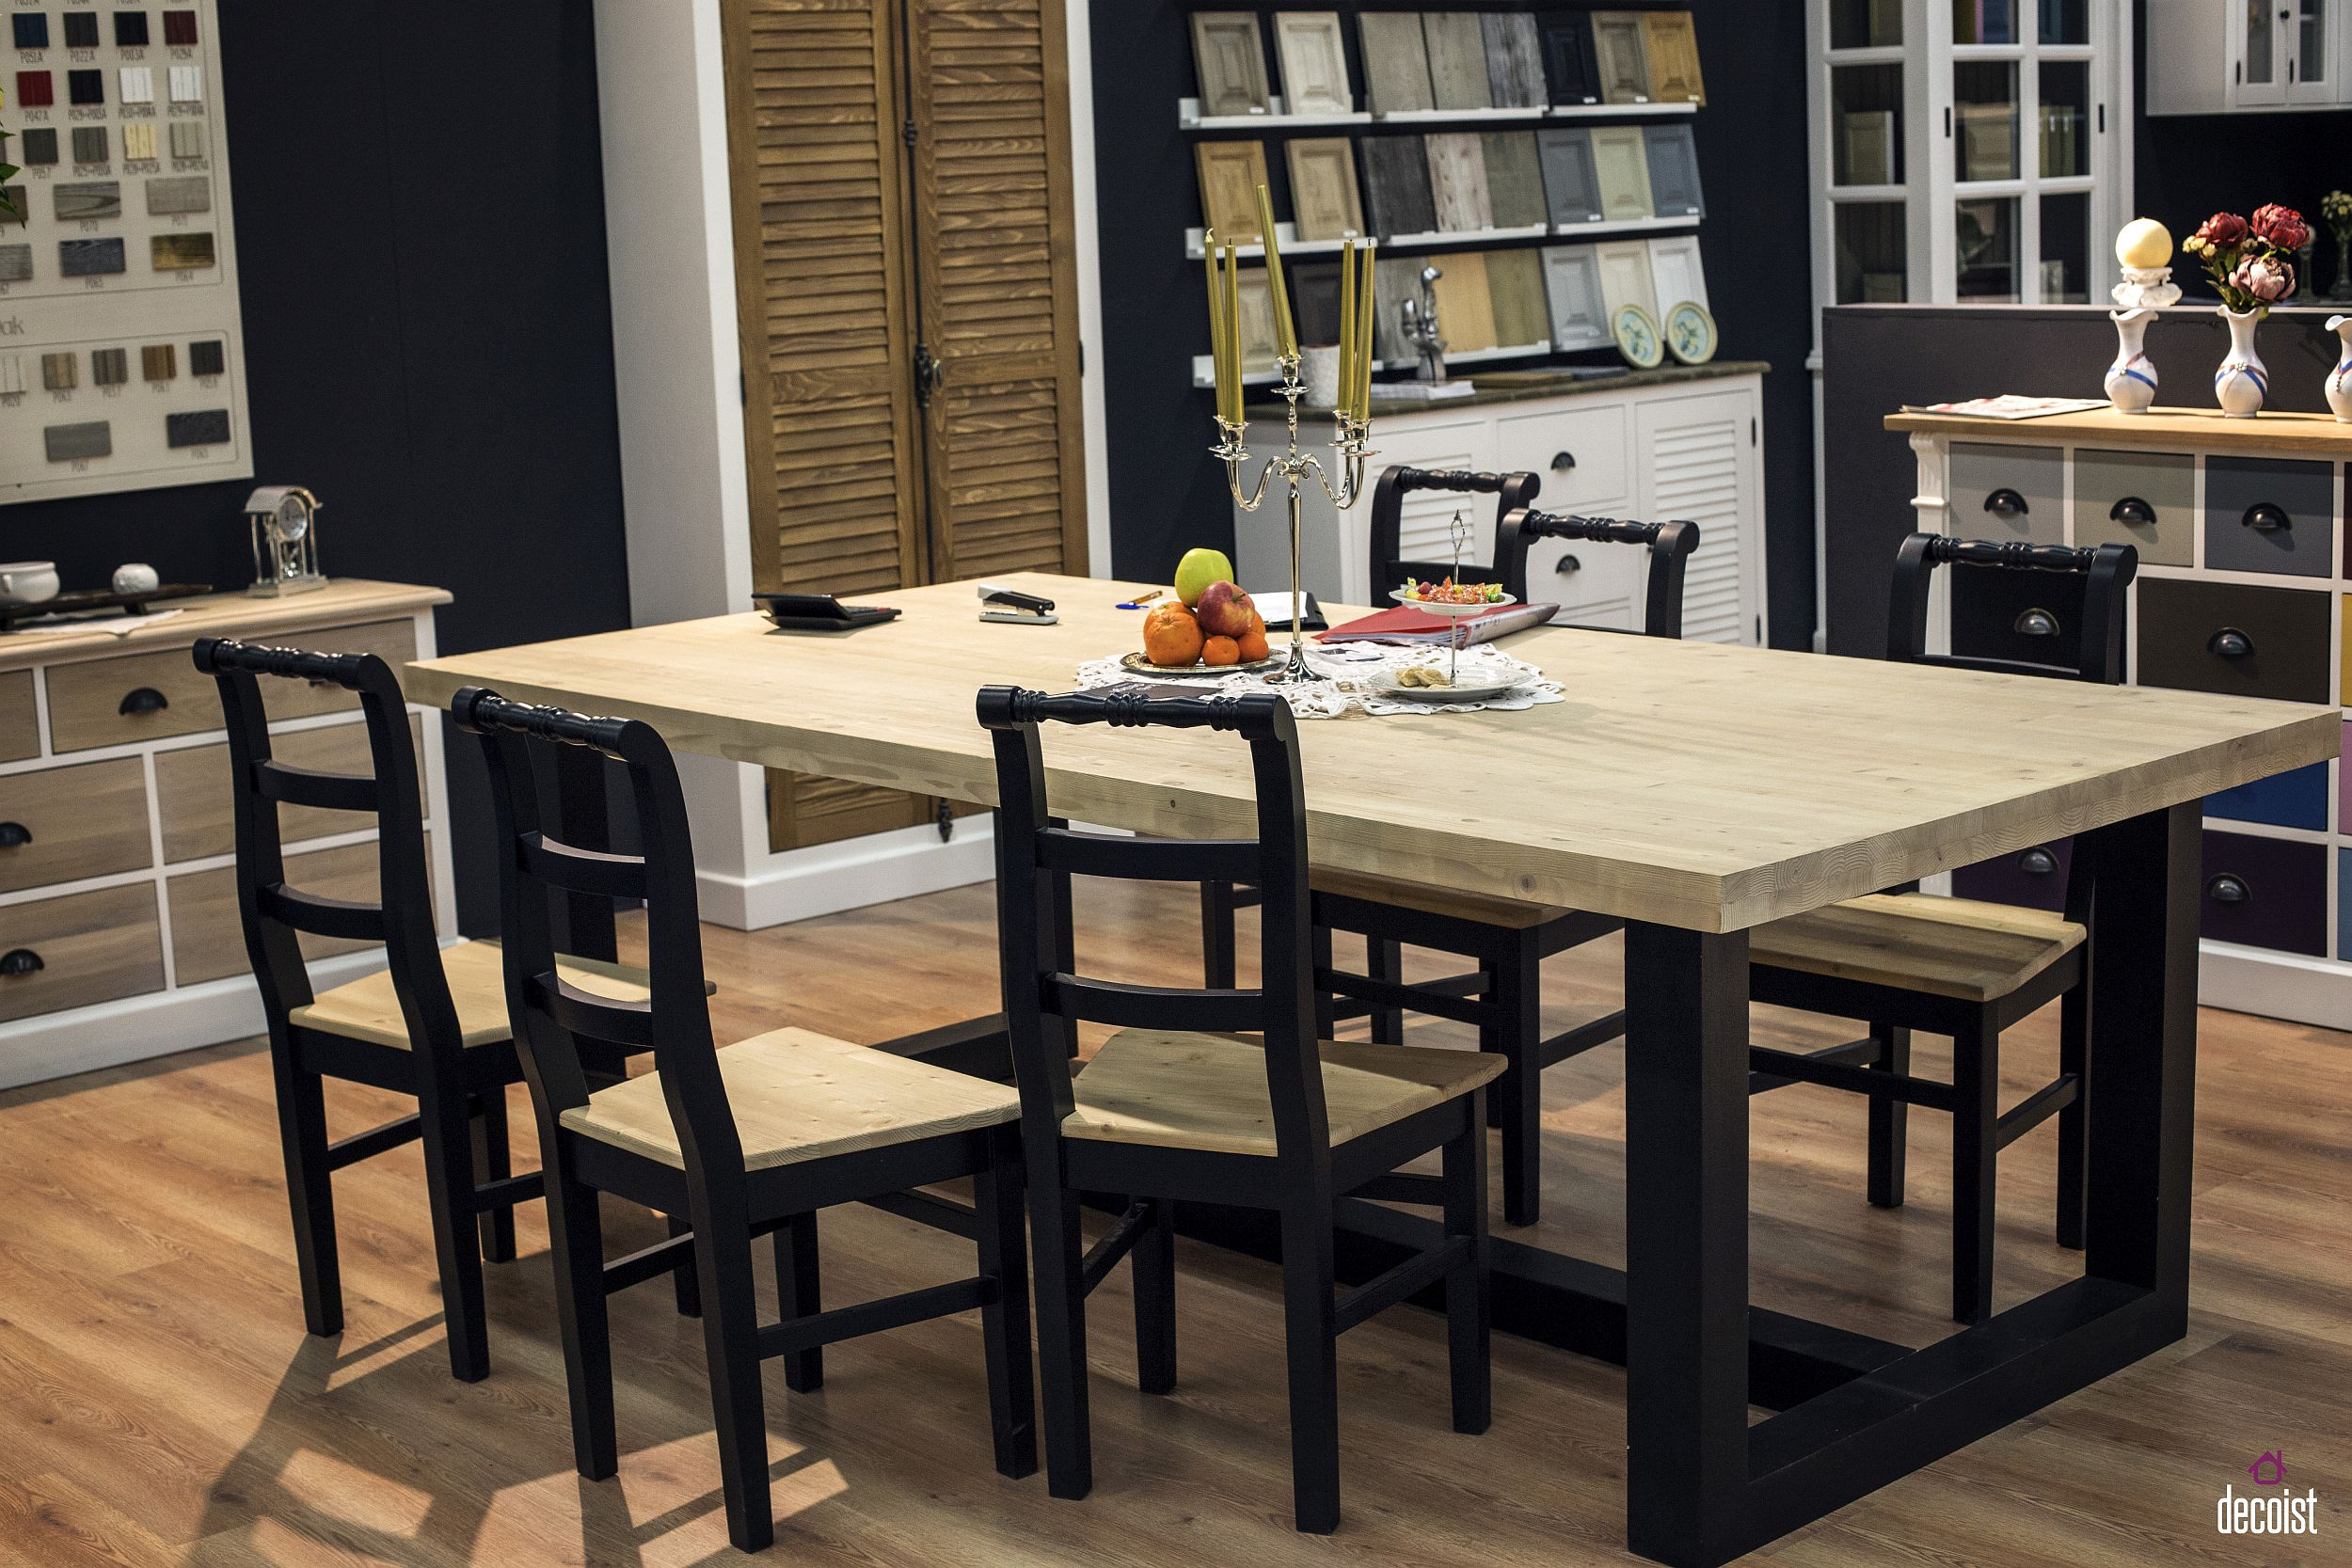 View in gallery clean straight lines give the classic wooden dining table a modern